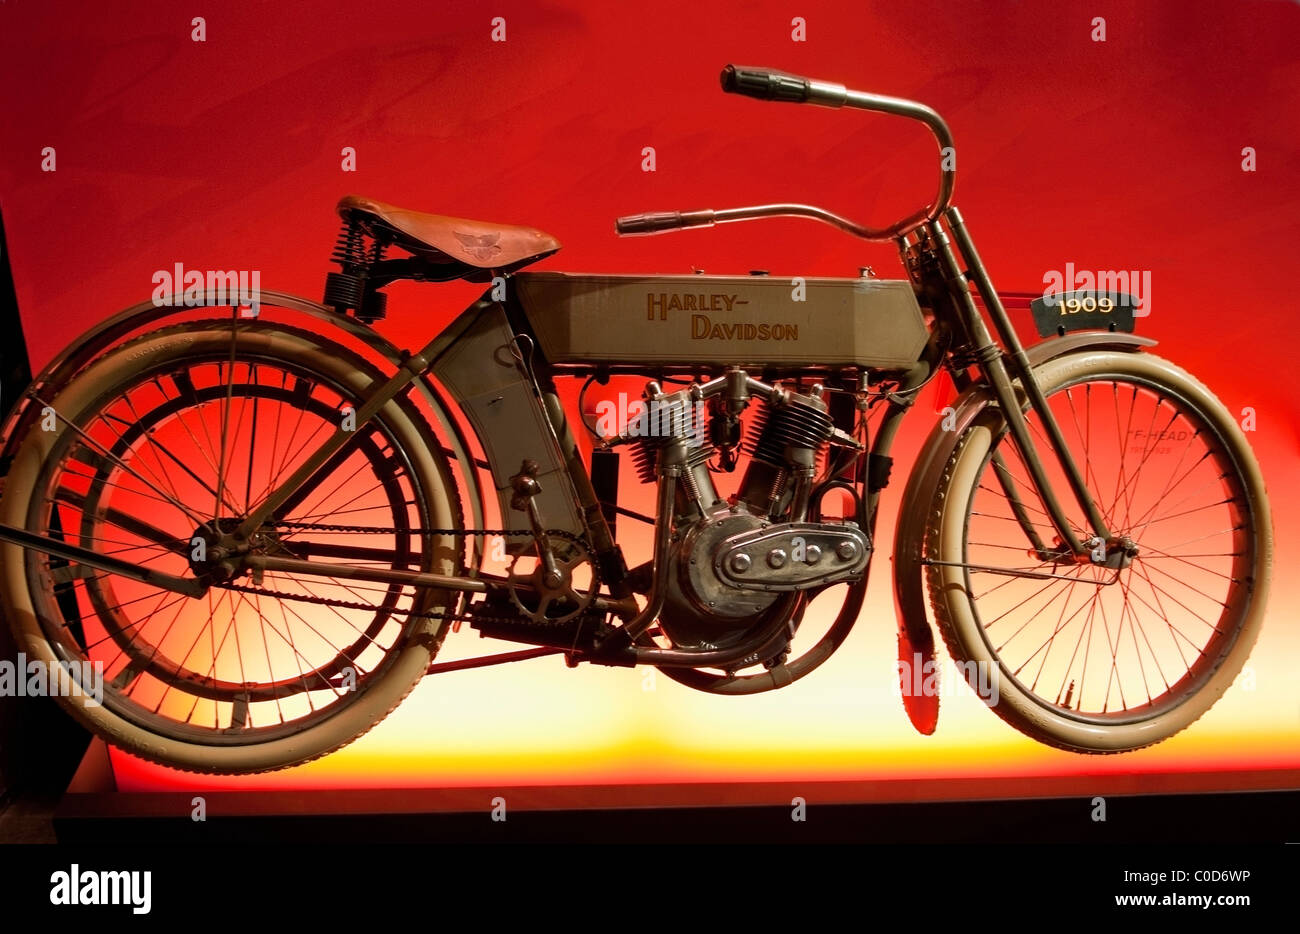 A 1909 Harley Davidson Motorcycle with the first V-Twin engine on display at the Harley Davidson Museum in Milwaukee, - Stock Image